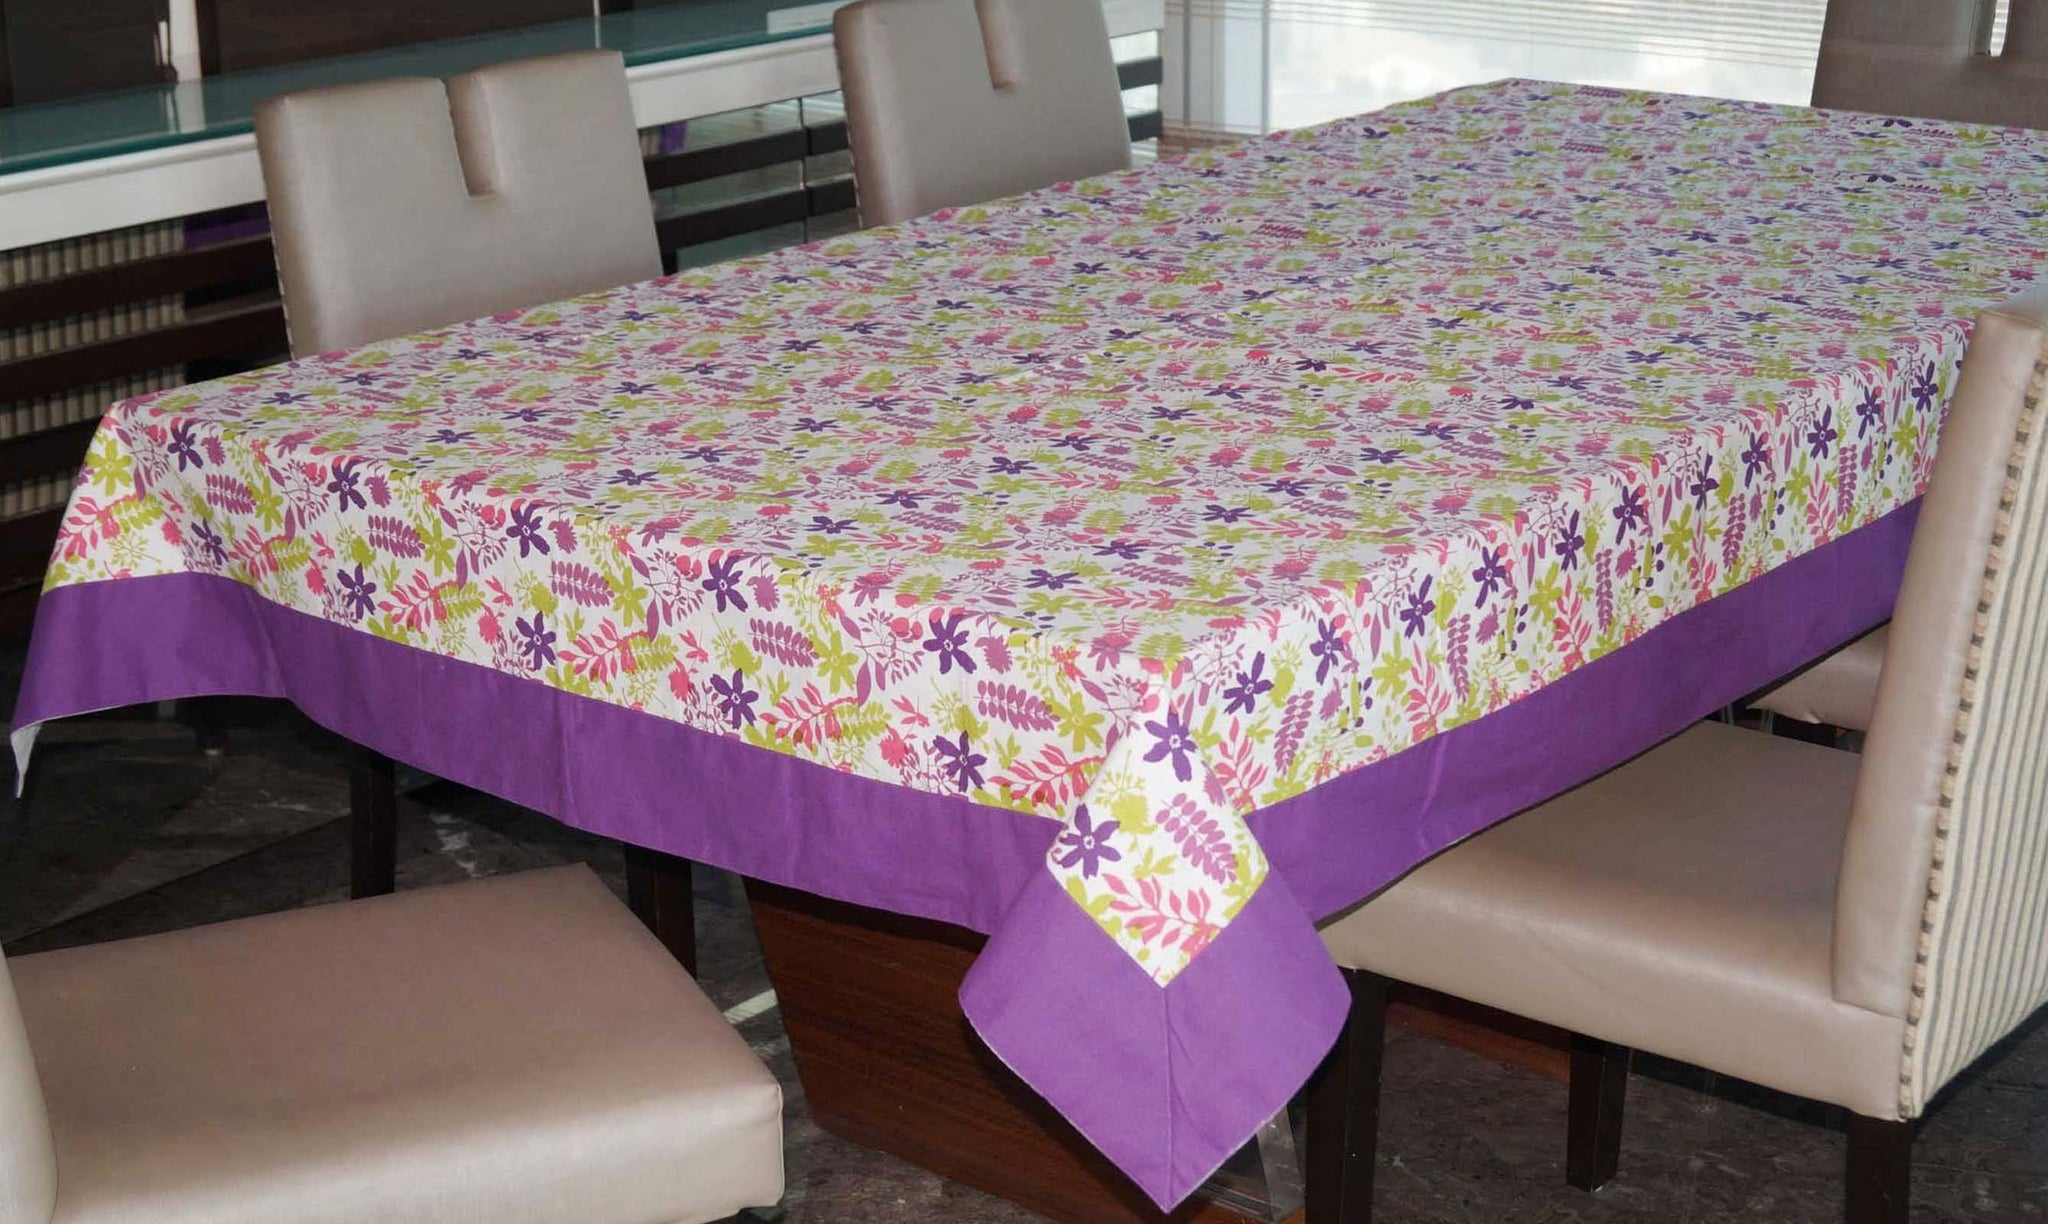 Lushomes 12 Seater Purple Printed Table Cloth - Lushomes